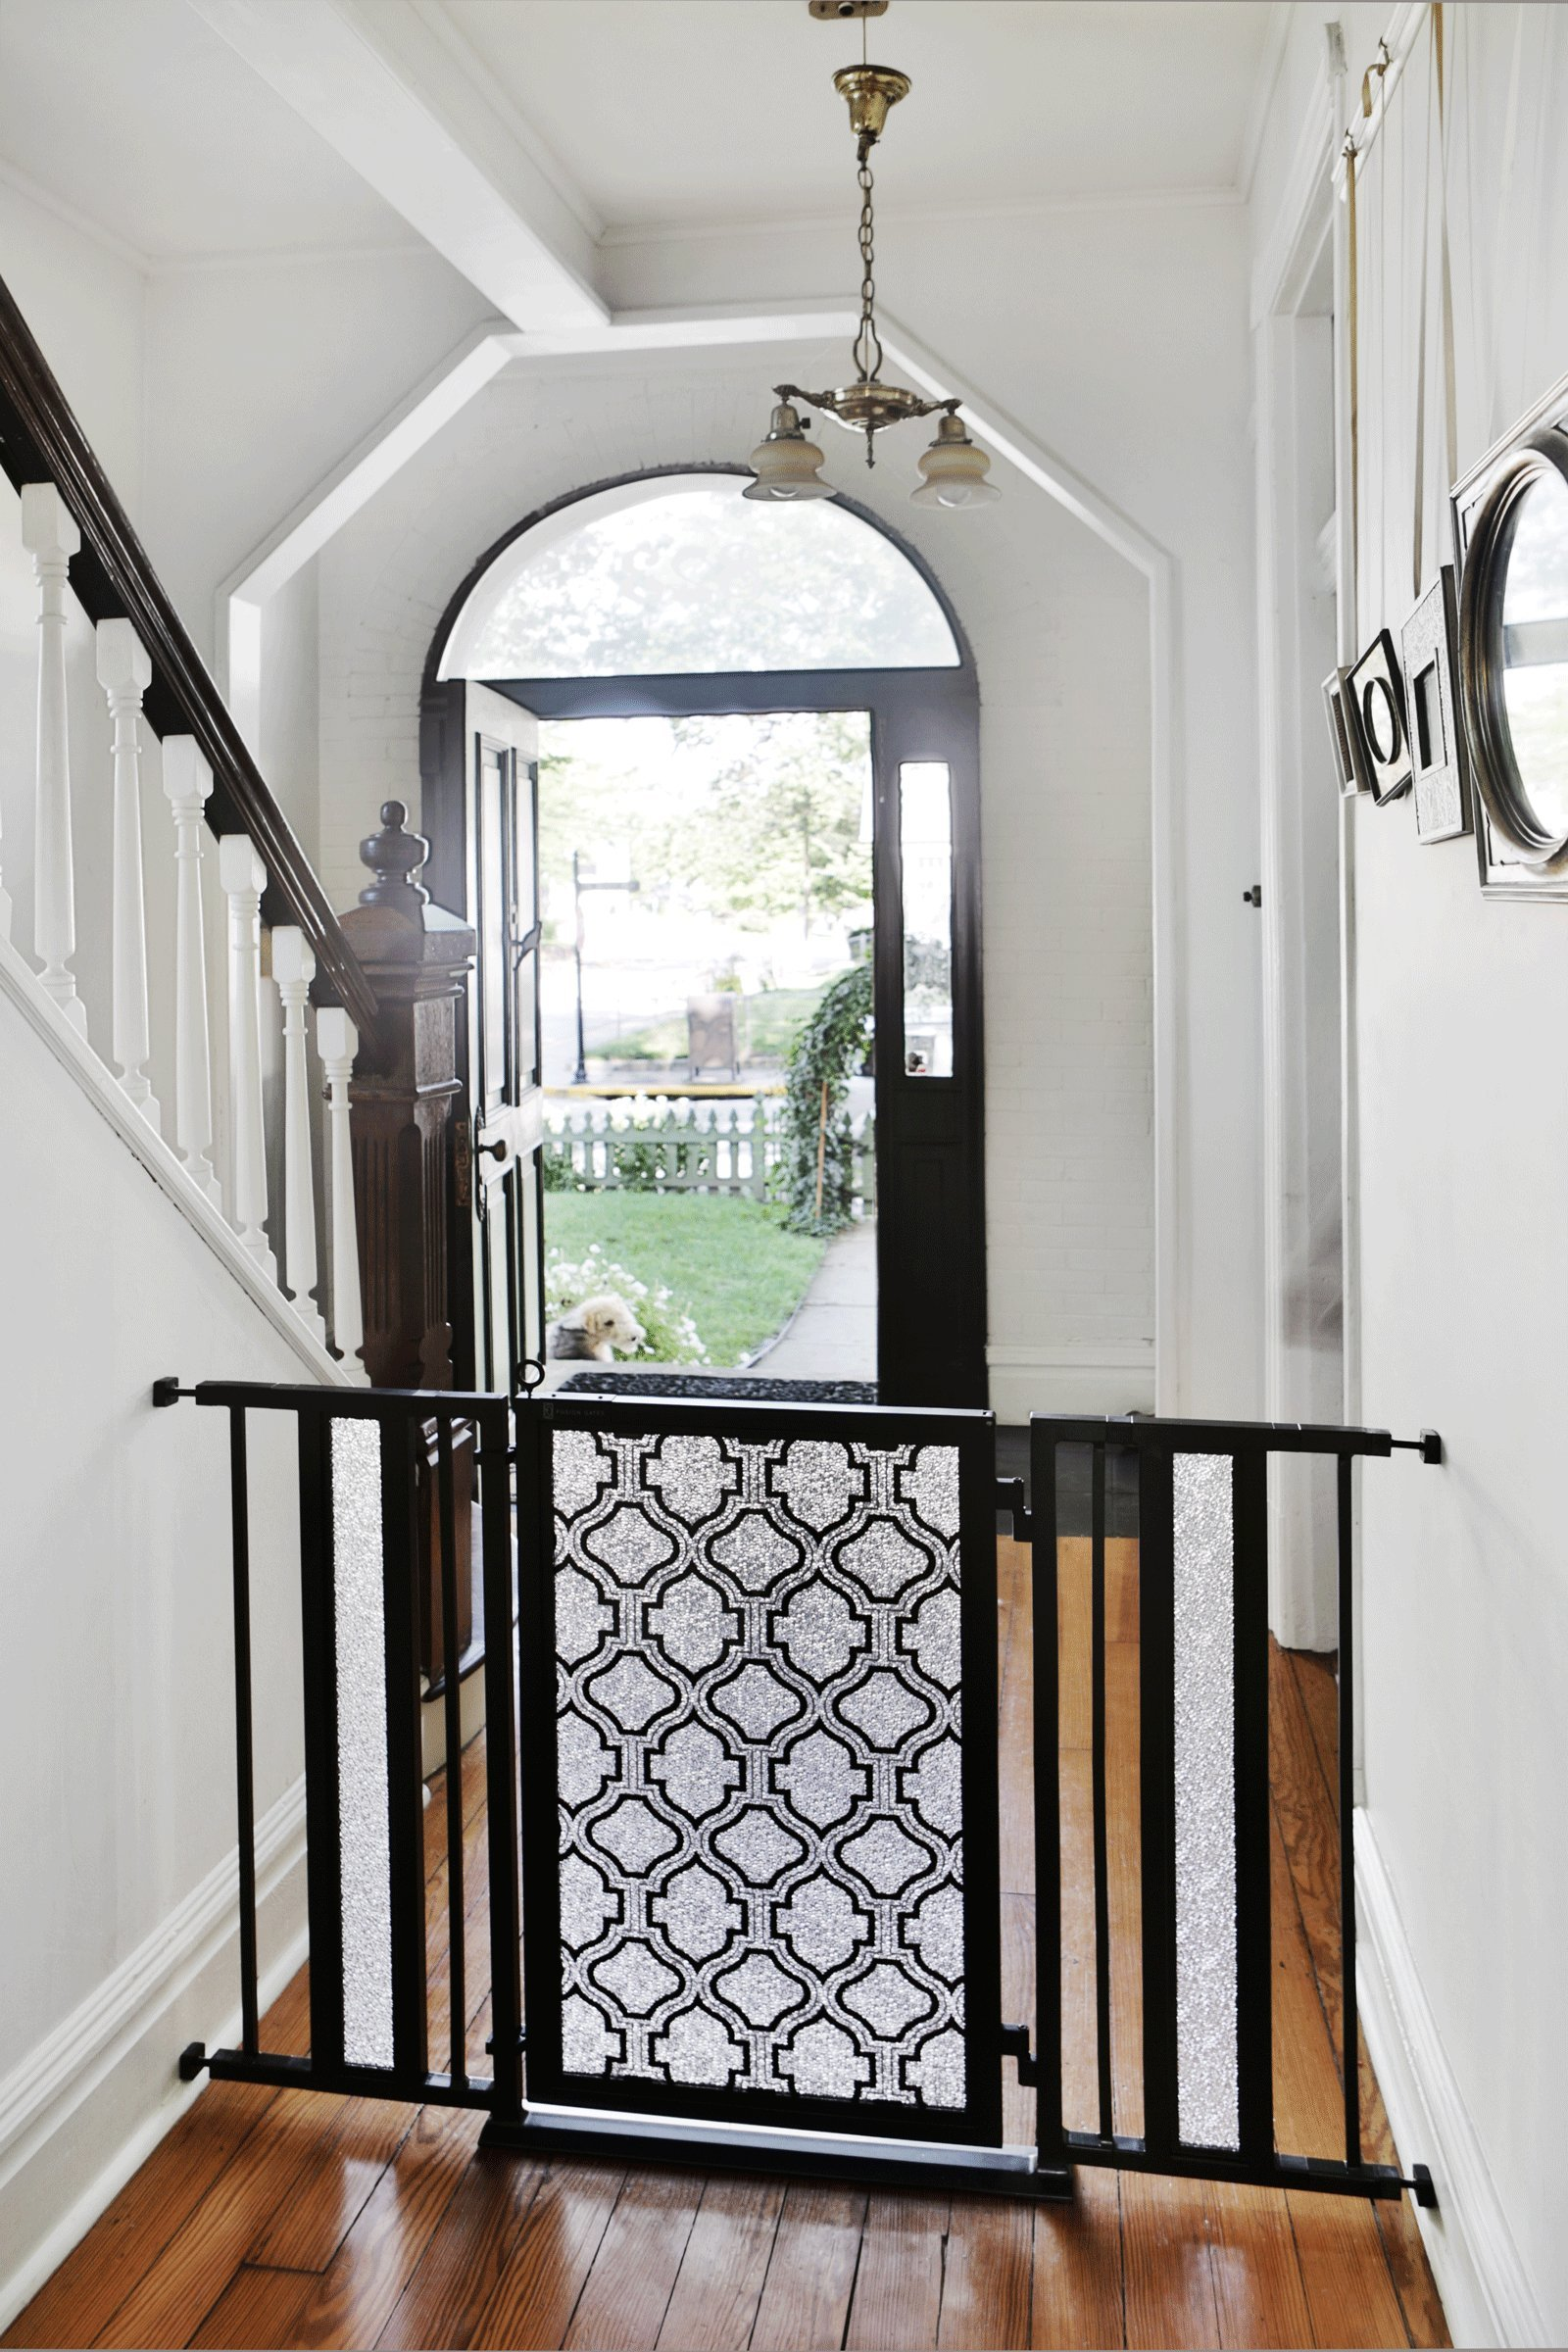 Fusion Gate for Baby & Dogs with Trellis Art Screen Design (Black, 52'' - 60'')